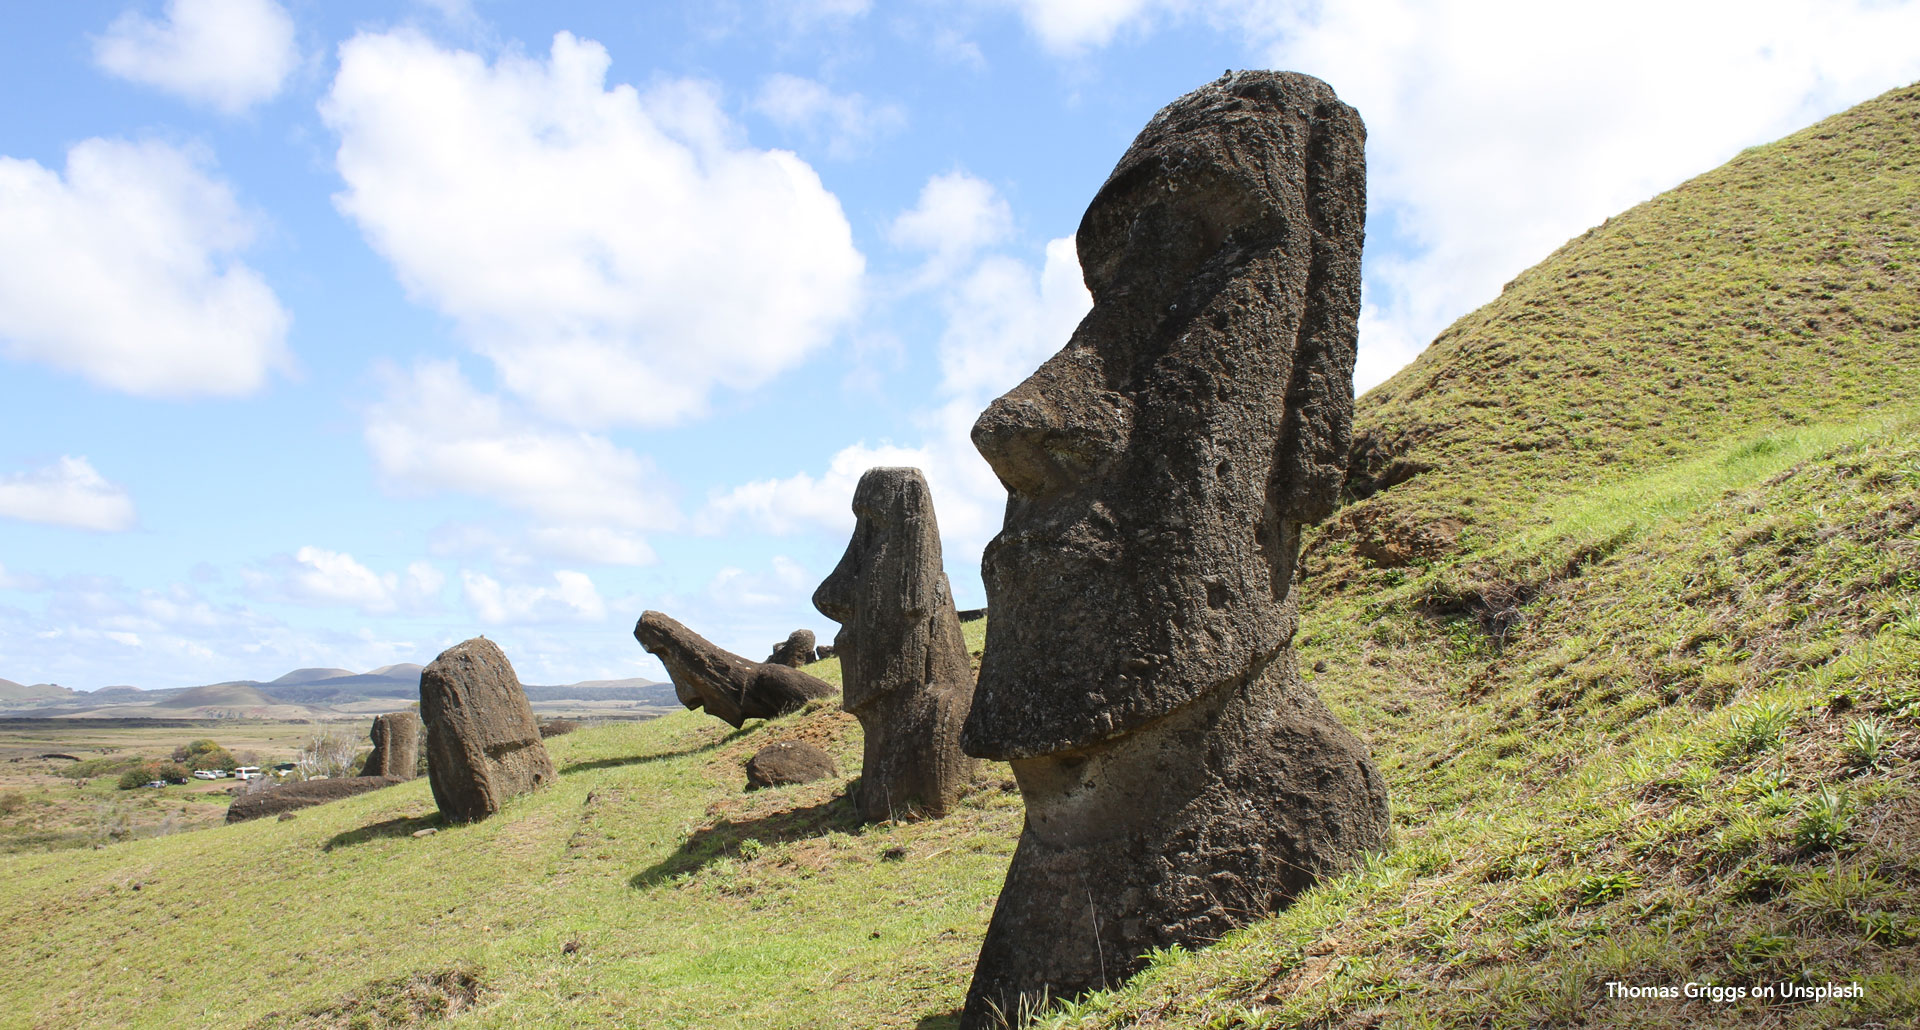 Moai head detail